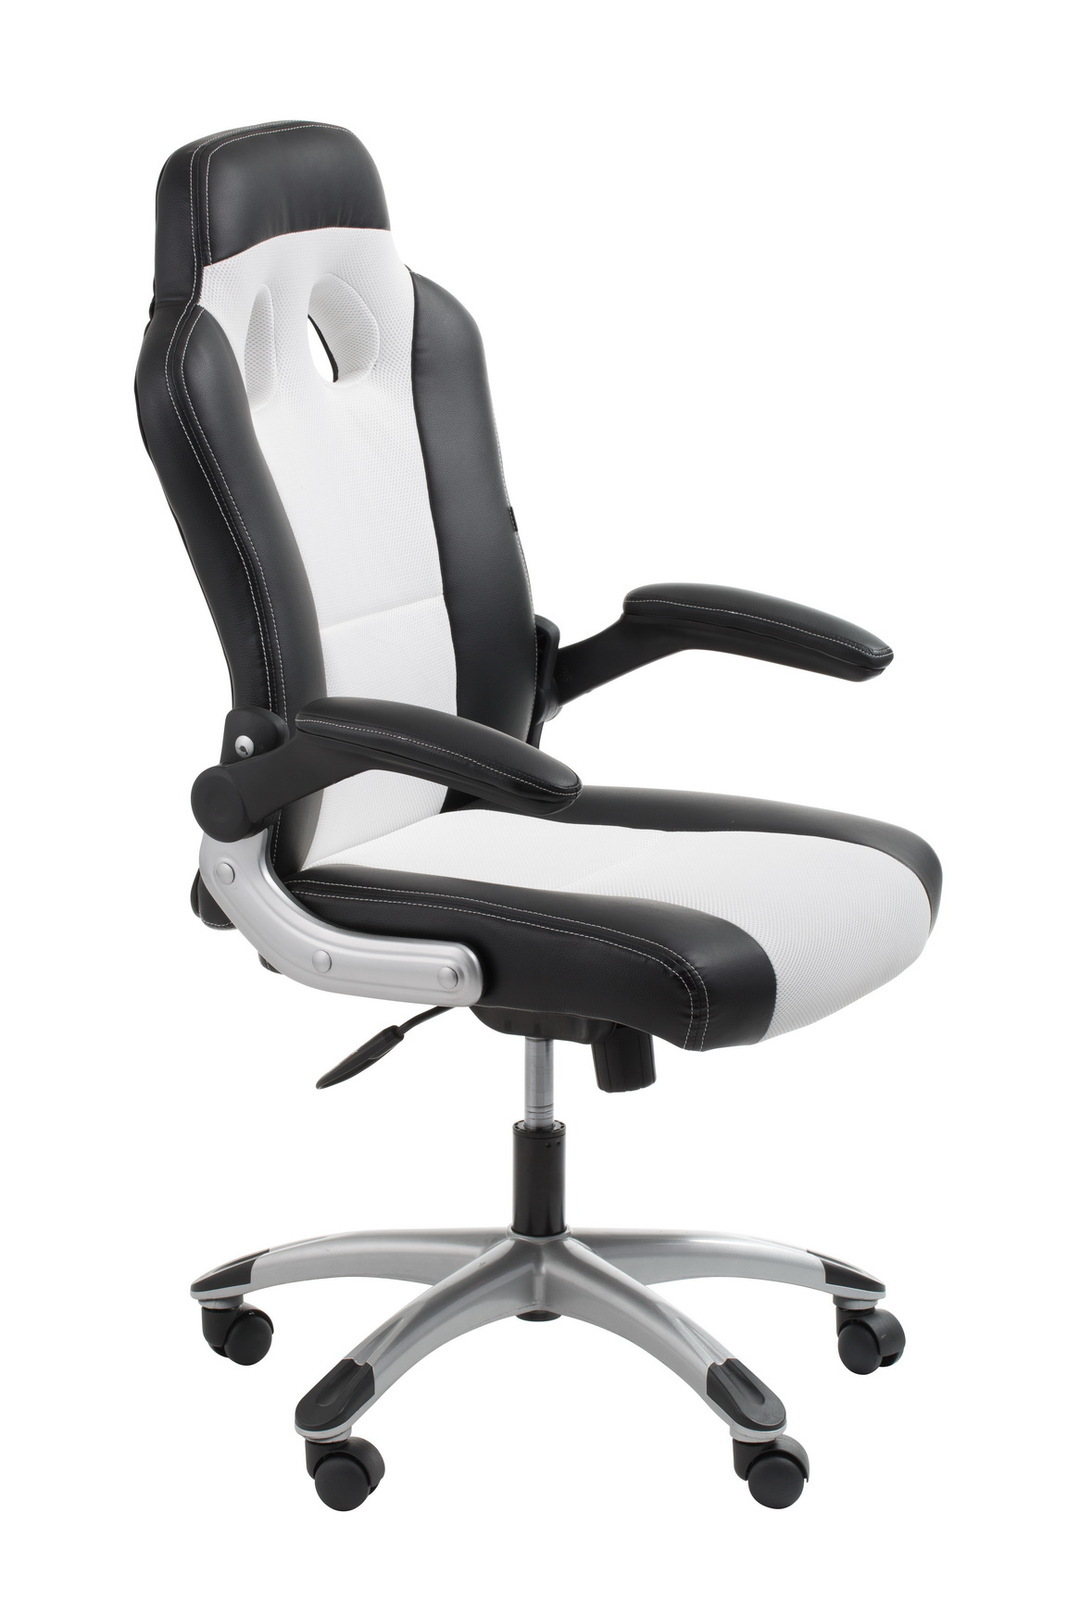 racer black white racing style chair office stock